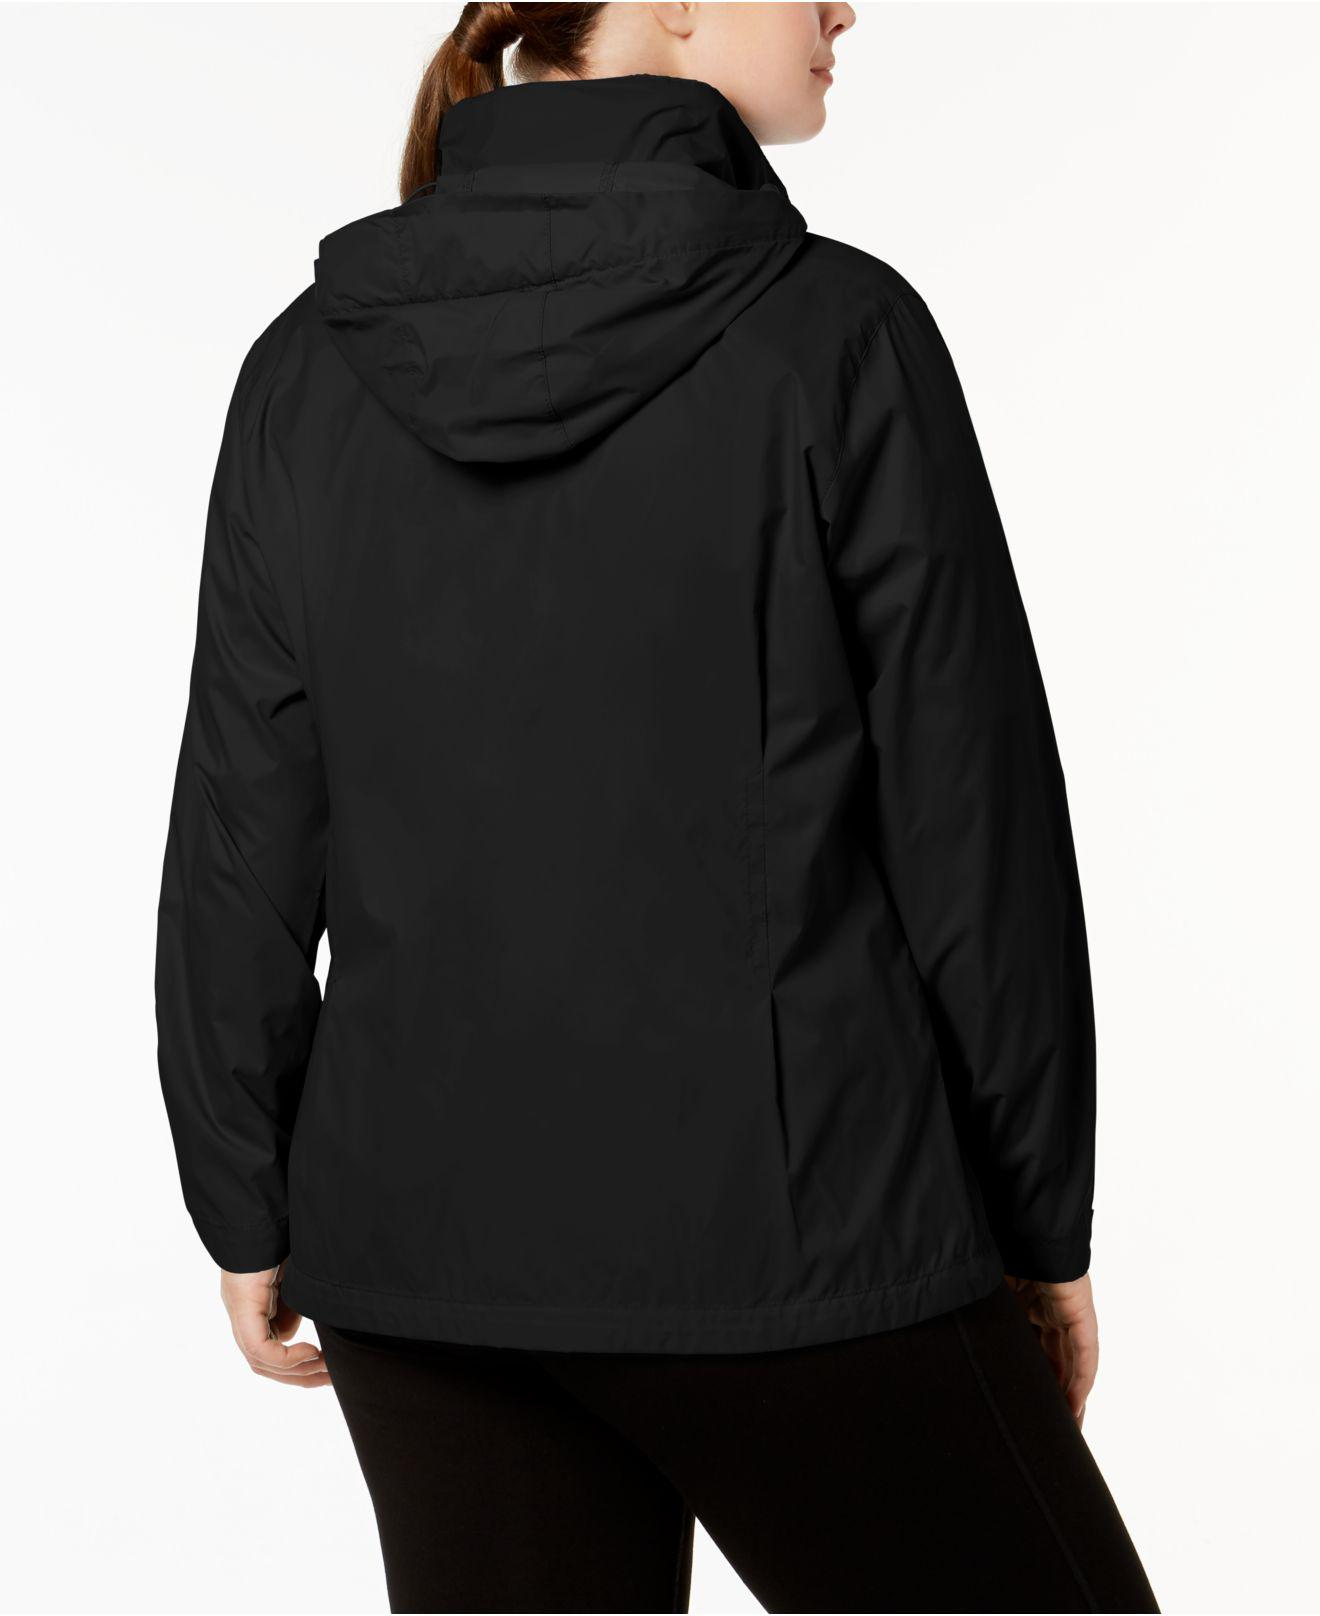 d256cffc6fc Lyst - Columbia Plus Size Switchback Iii Jacket